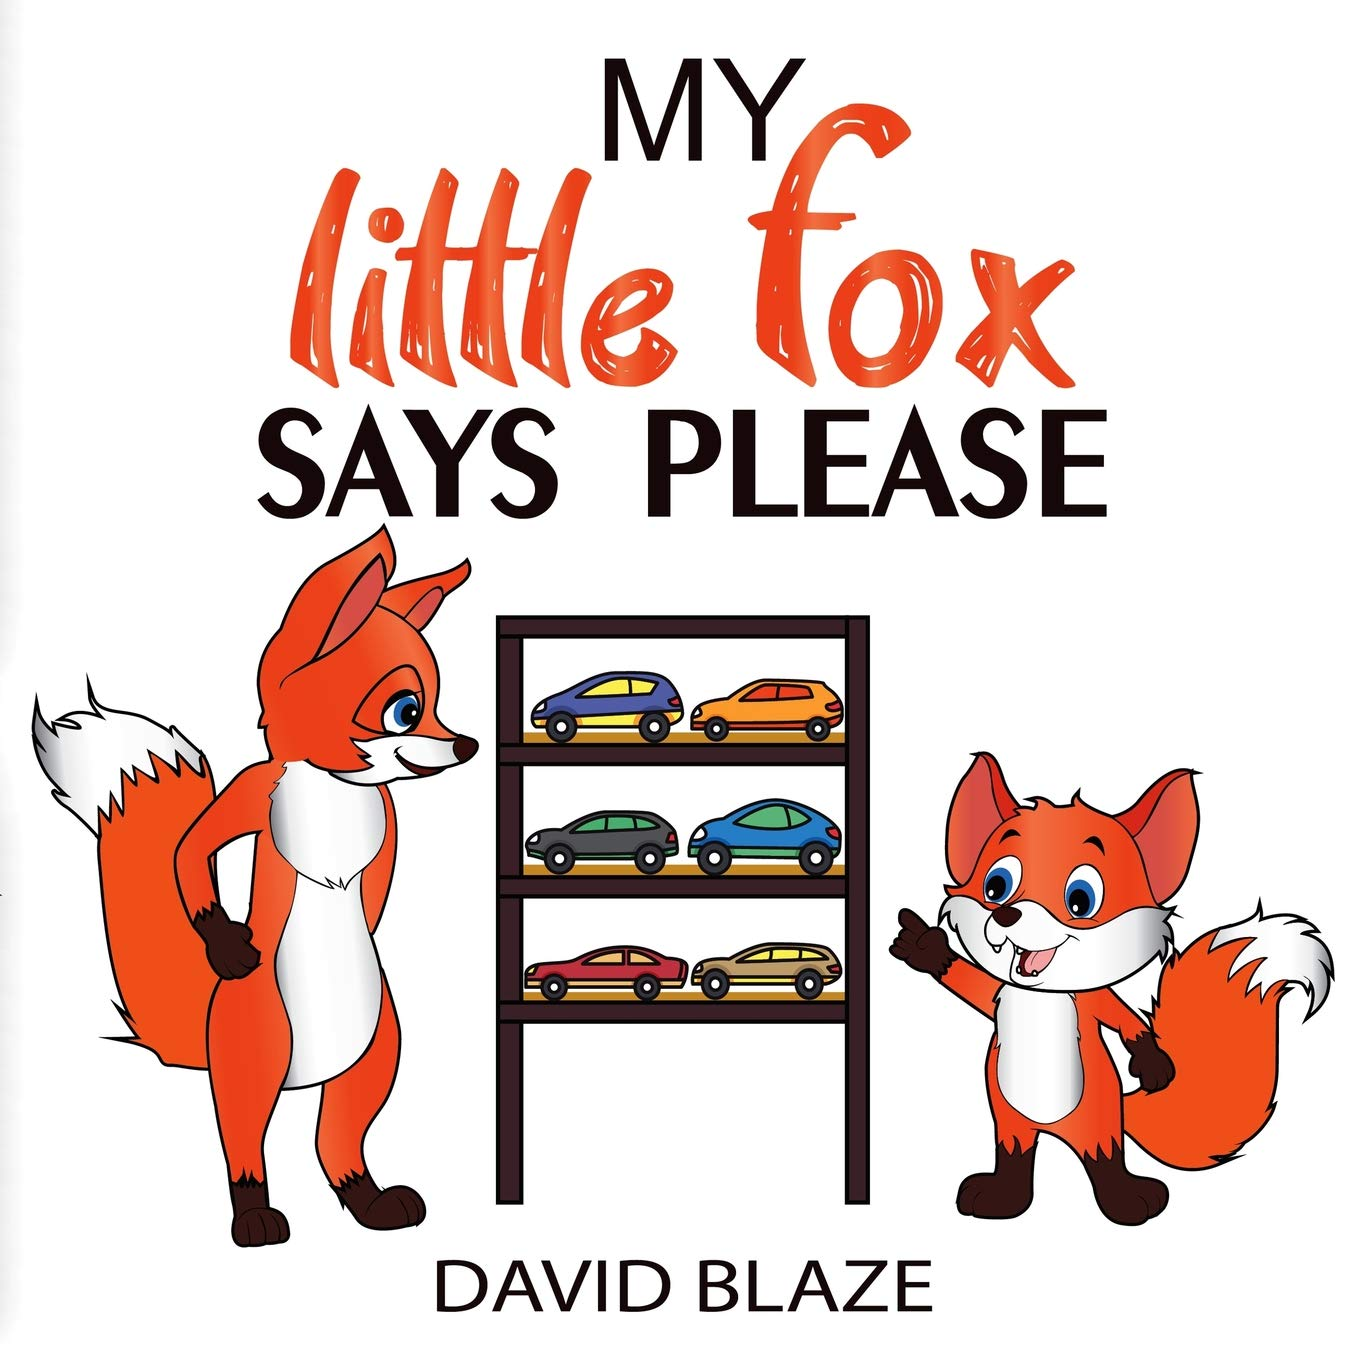 Amazon.com: My Little Fox Says Please (9781732591400): David ...